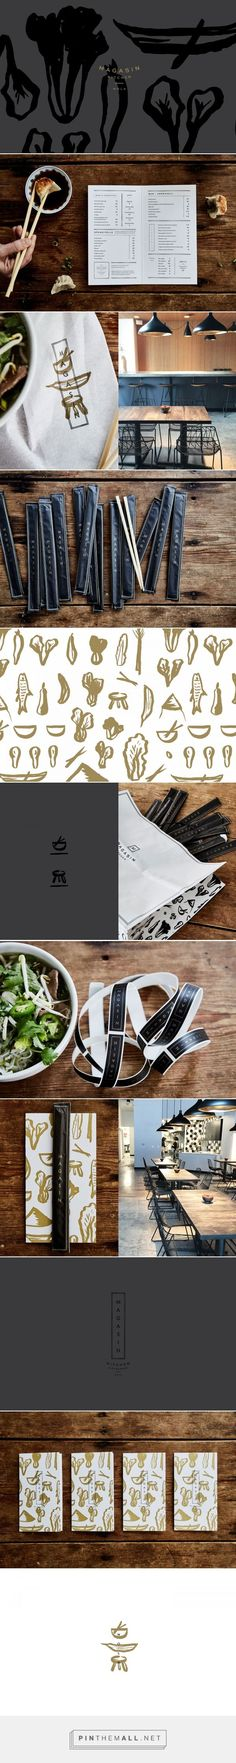 Magasin Kitchen Vietnamese Restaurant Branding and Menu Design by Stitch Design Co. | Fivestar Branding Agency – Design and Branding Agency & Curated Inspiration Gallery